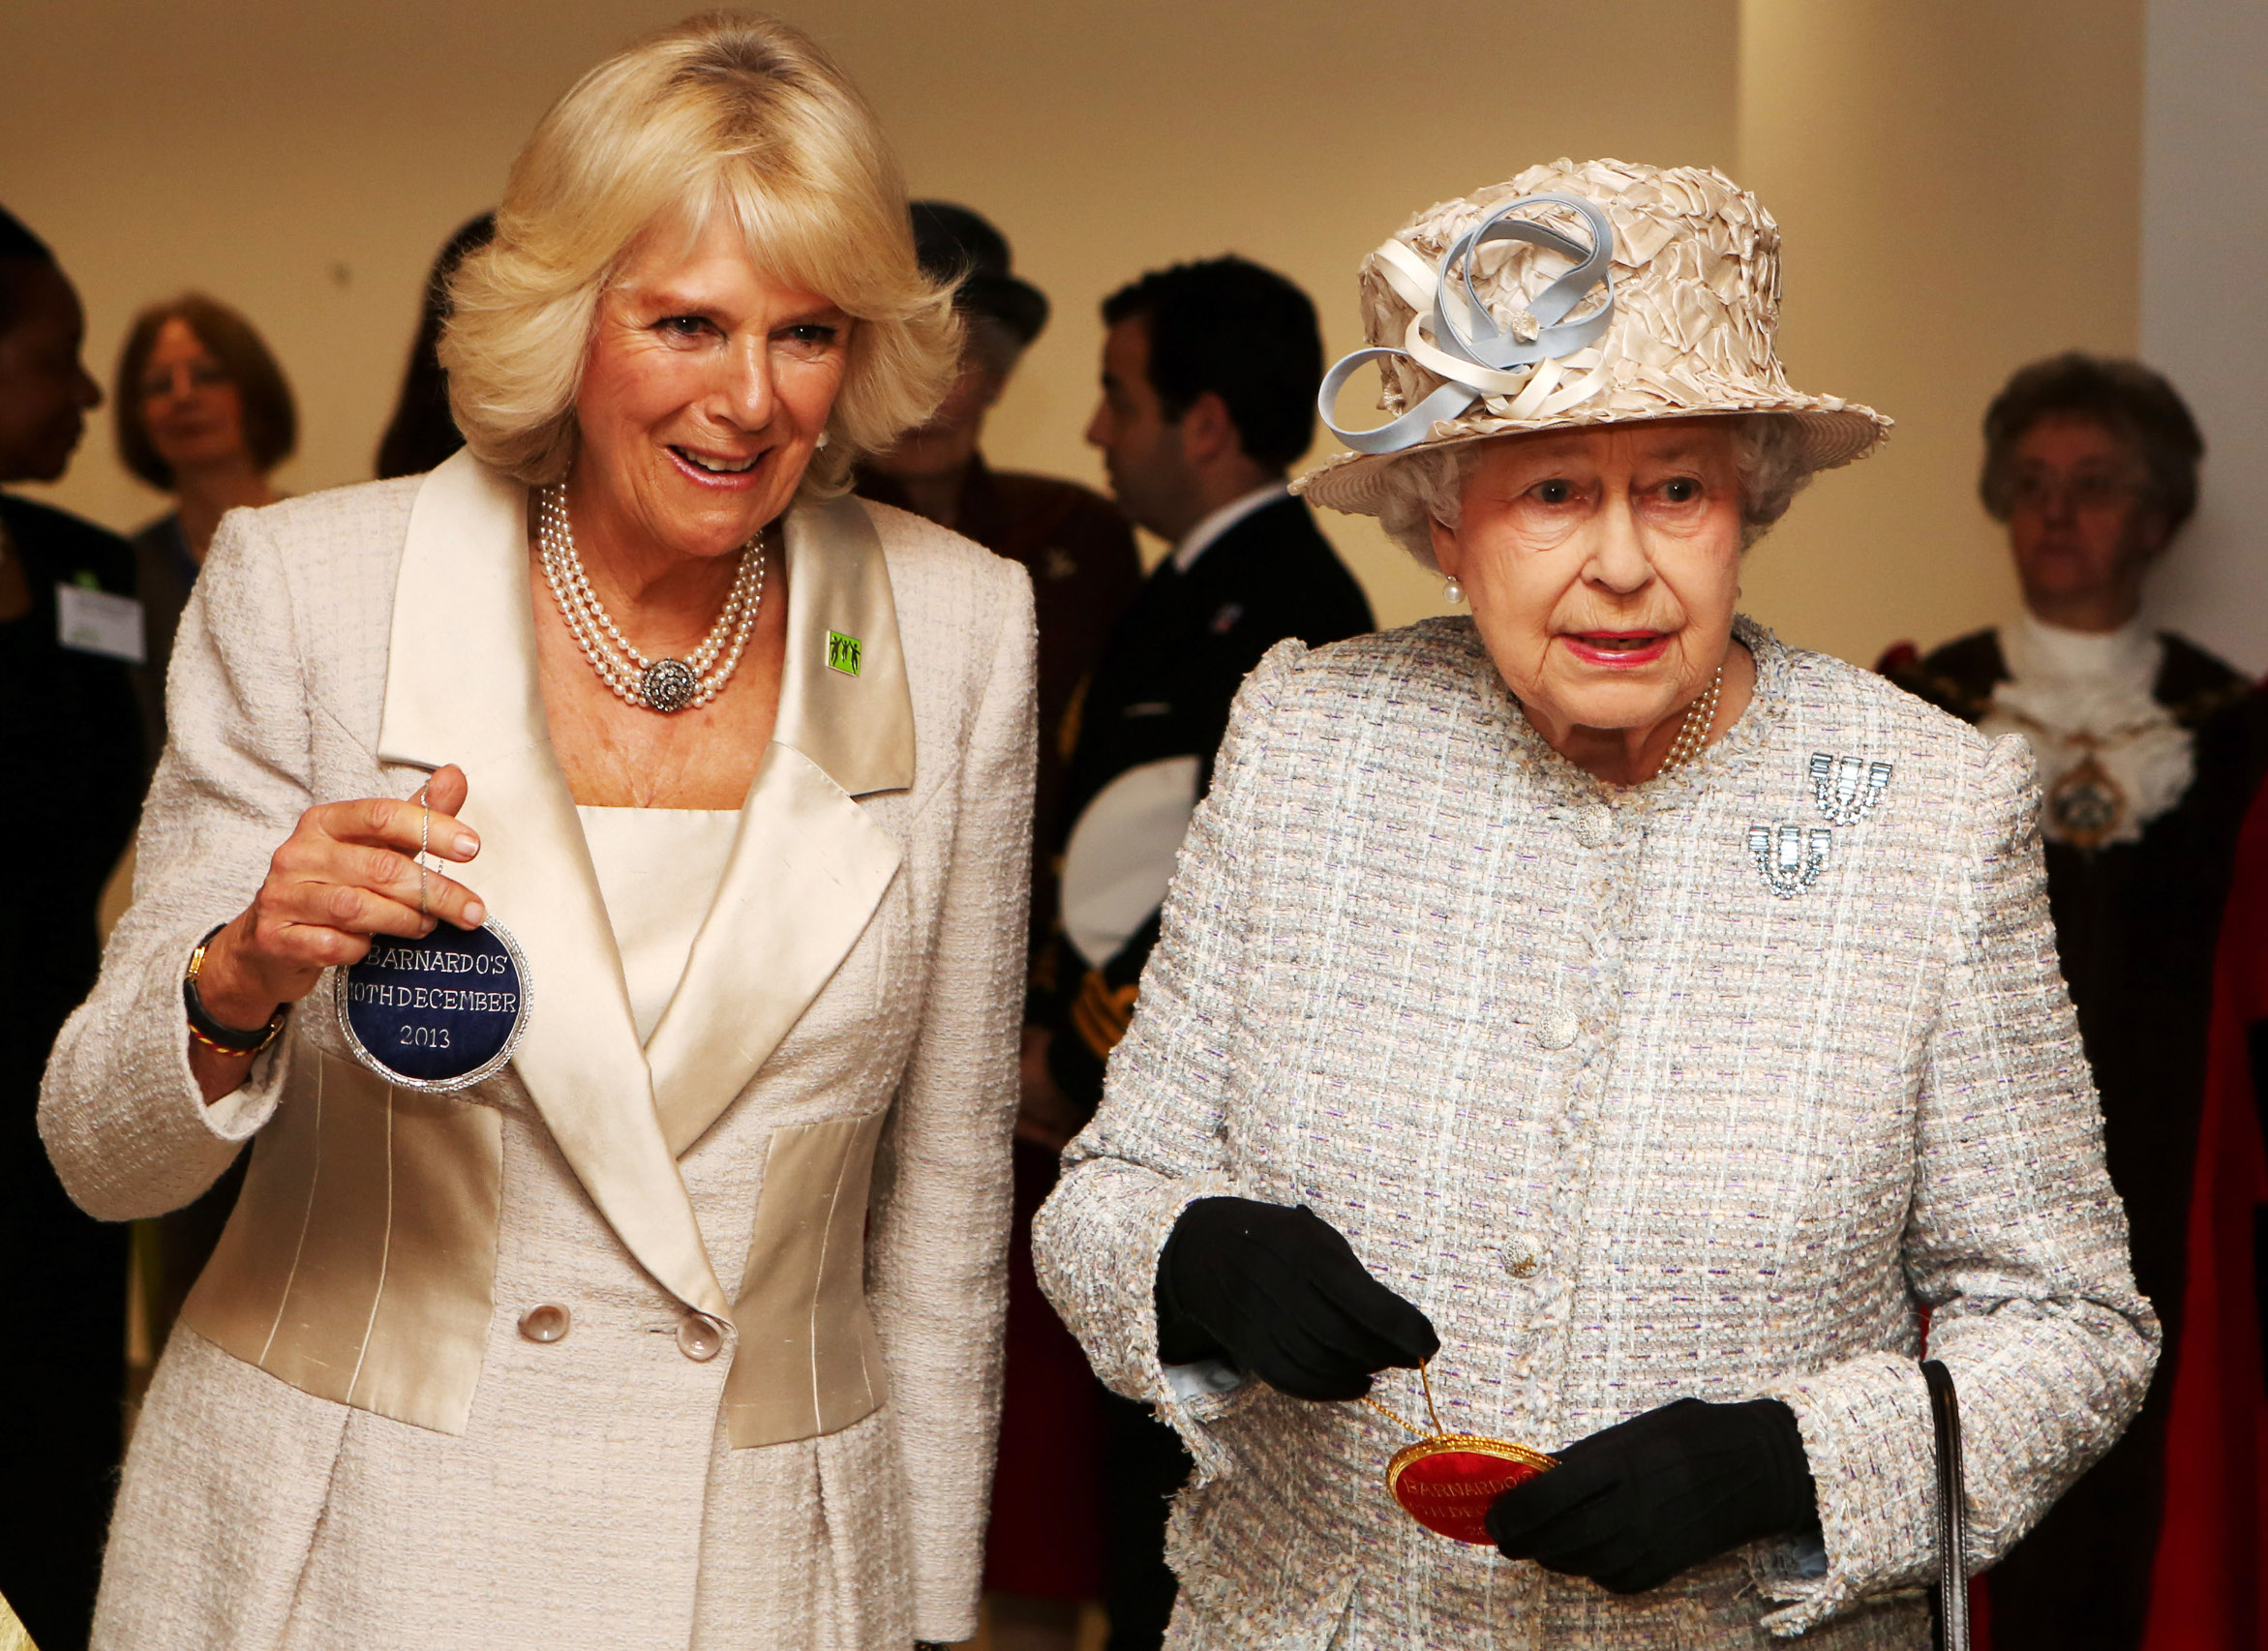 LONDON, ENGLAND - DECEMBER 10:  Camilla, Duchess of Cornwall and Queen Elizabeth II visit the new Barnardo's HQ in Barkingside on December 10, 2013 in London, England.  (Photo by Chris Radburn - WPA Pool/Getty Images)